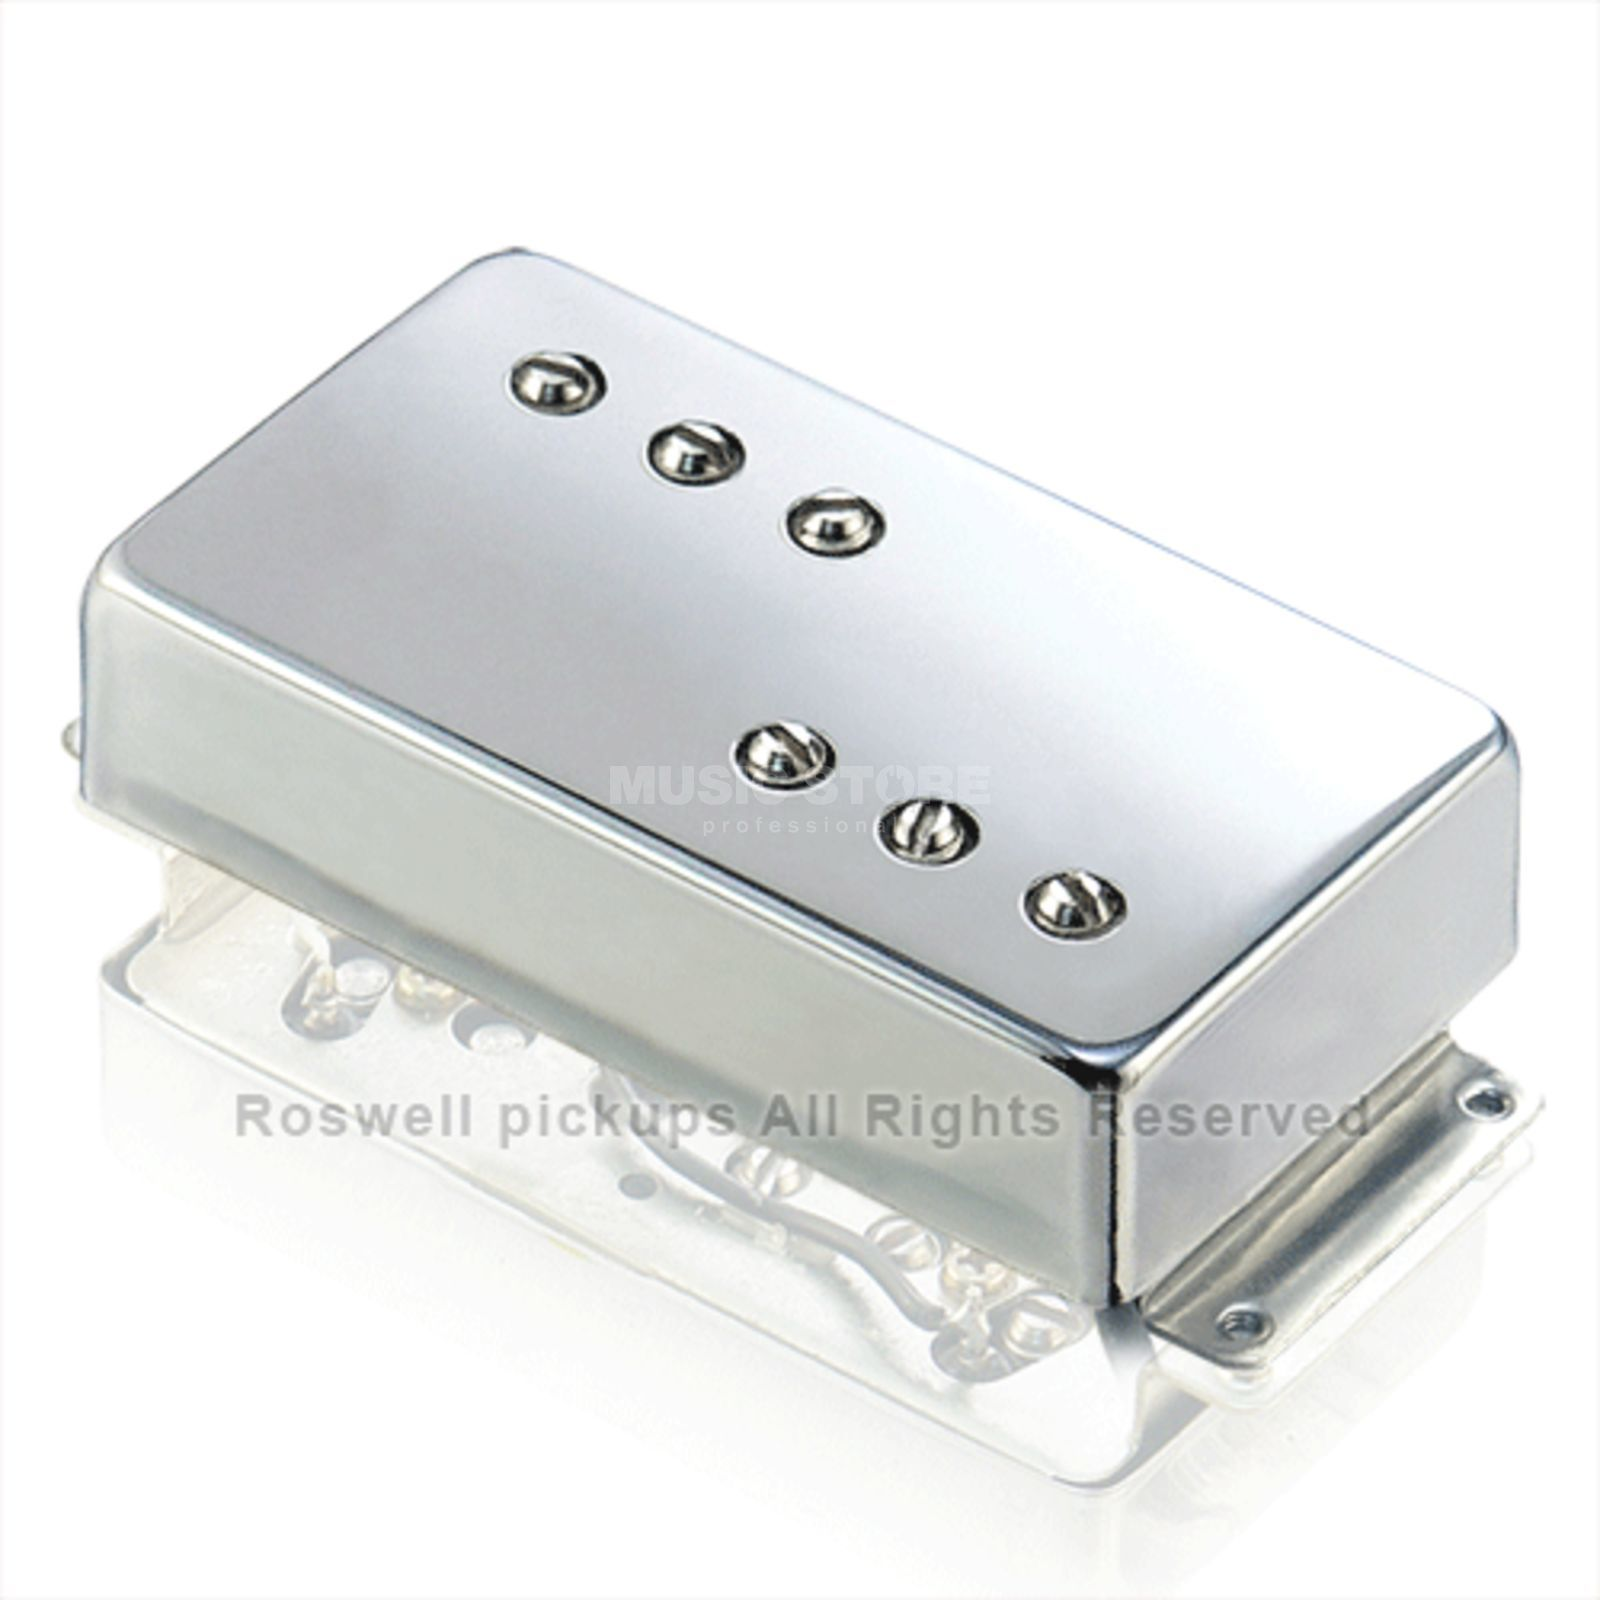 Roswell Pickups WDR10 Humbucker Chrome Product Image